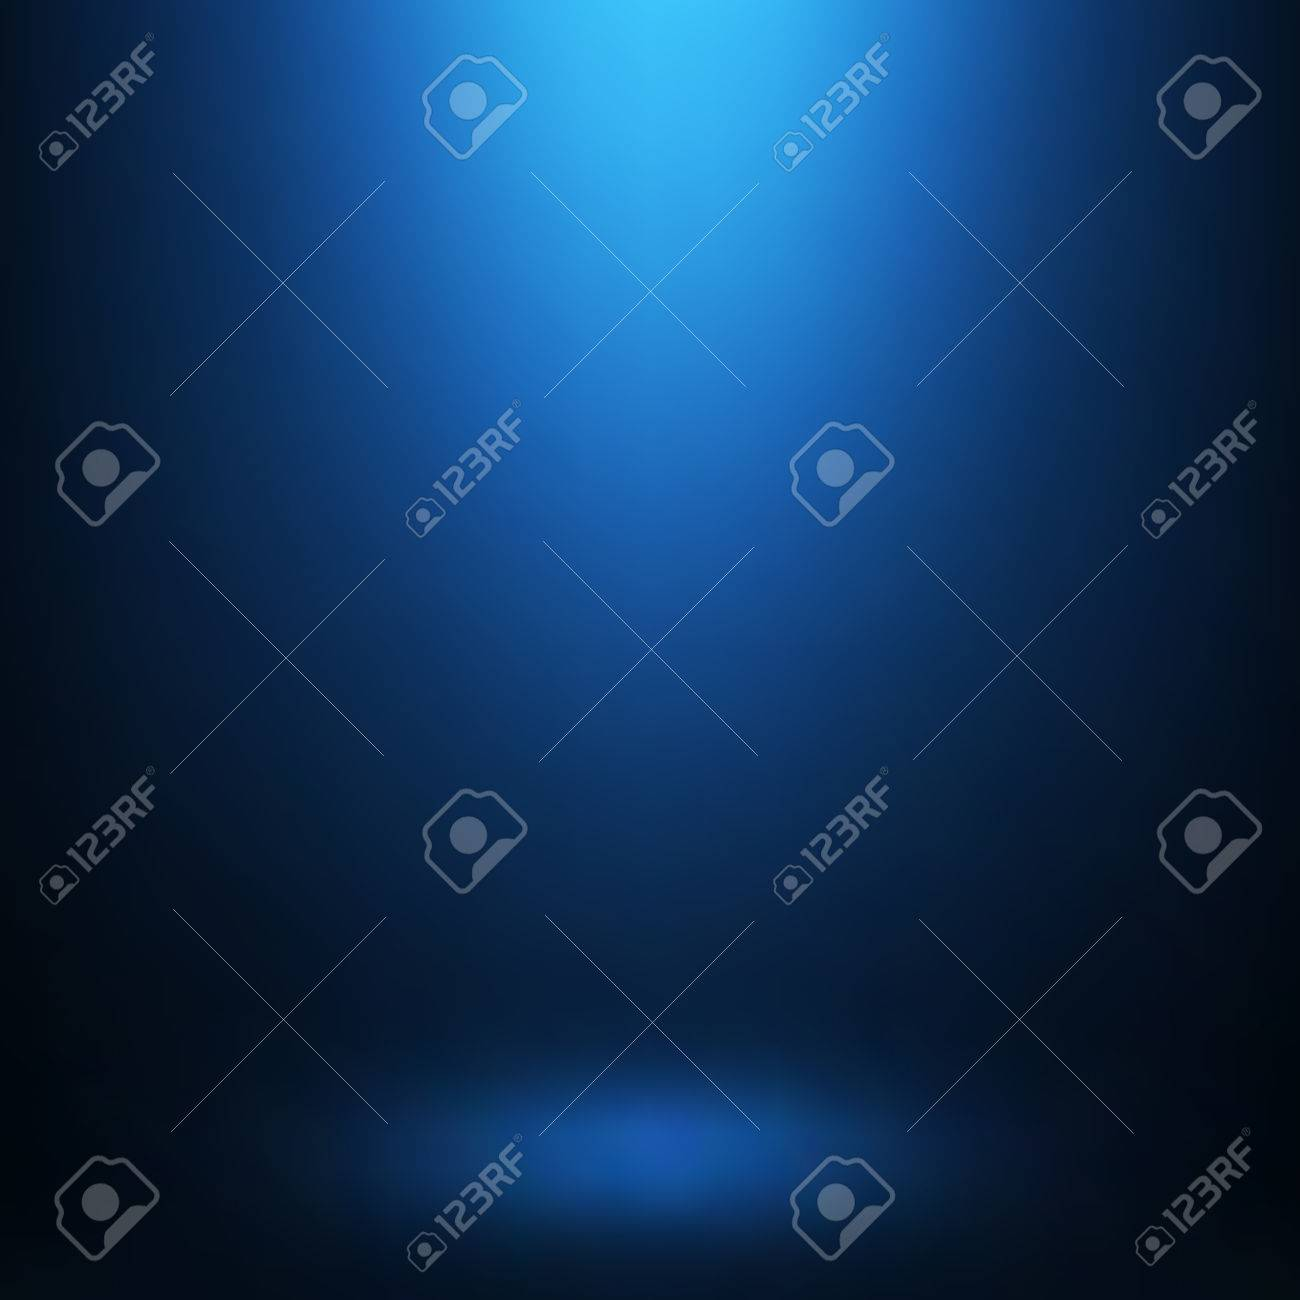 Abstract gradient blue, used as background for display your products - 54325905